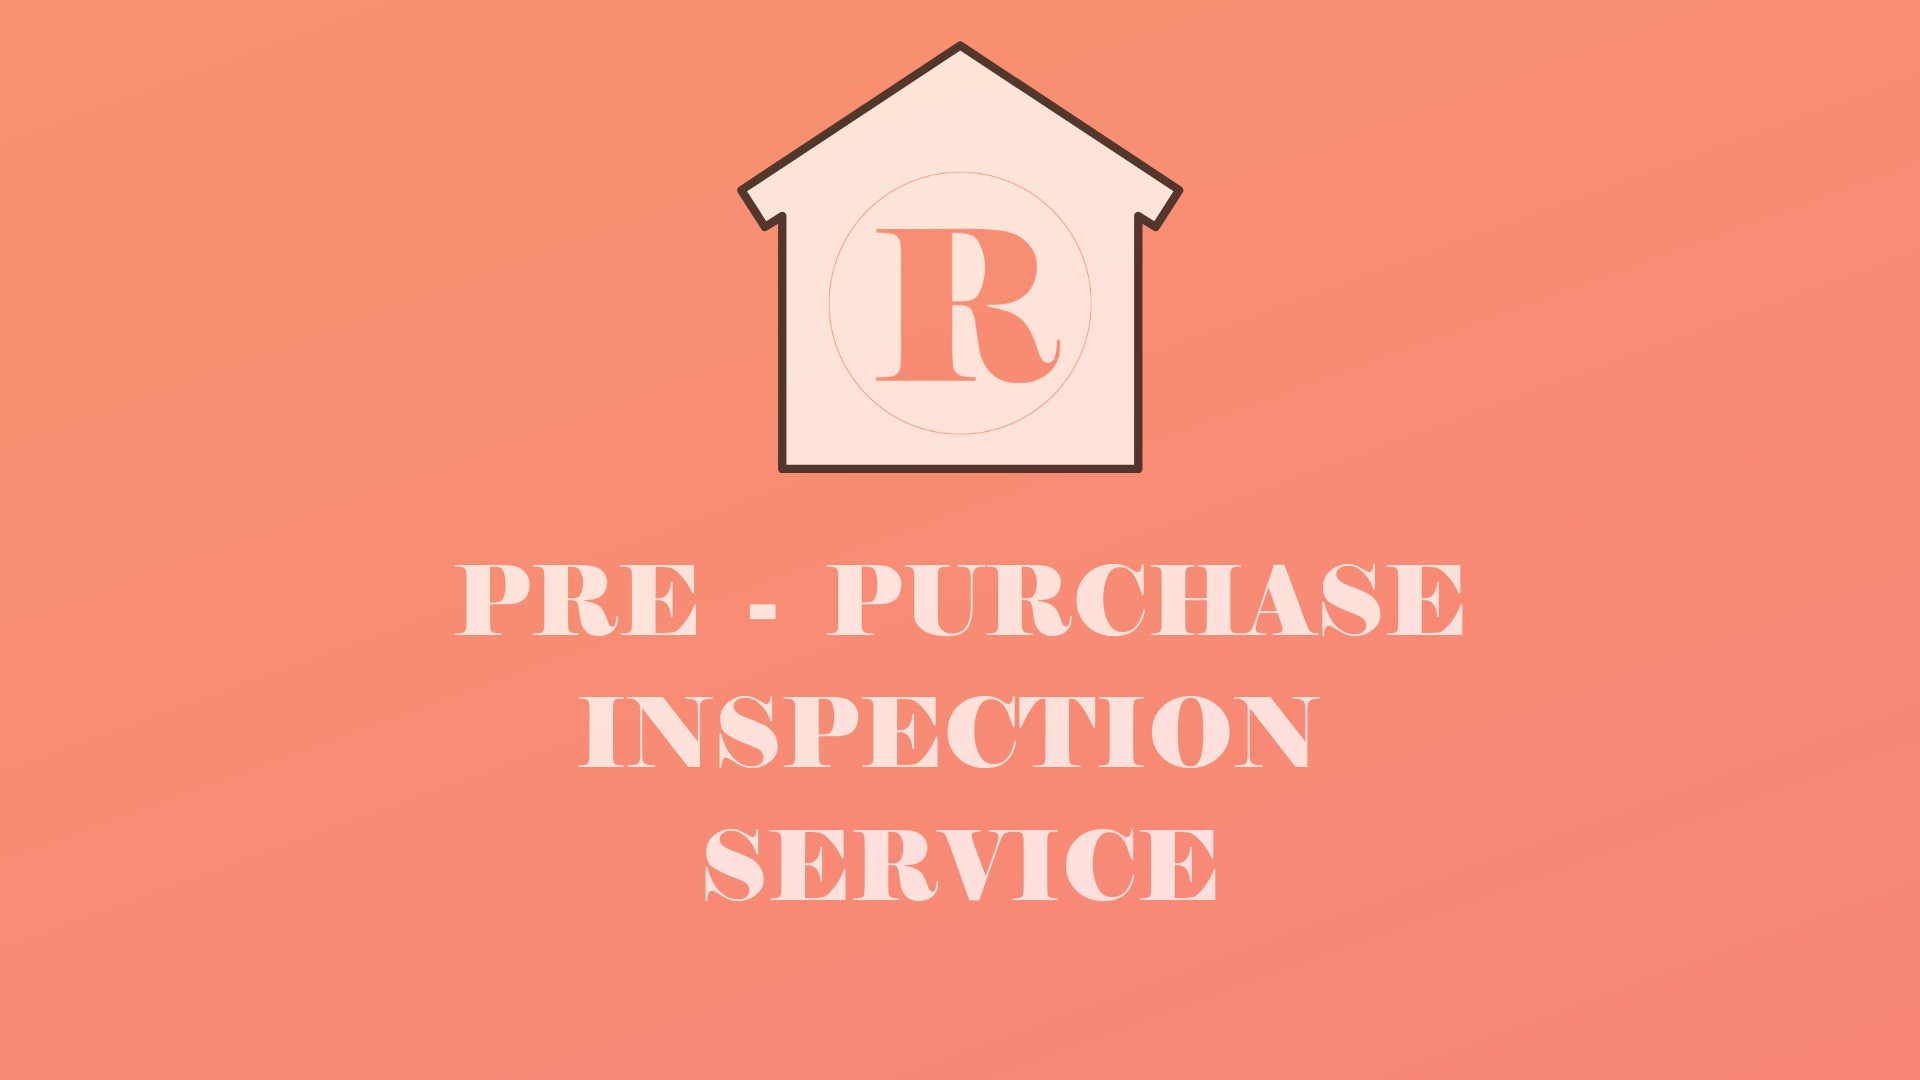 BASIC PACKAGE PRE -PURCHASE INSPECTION